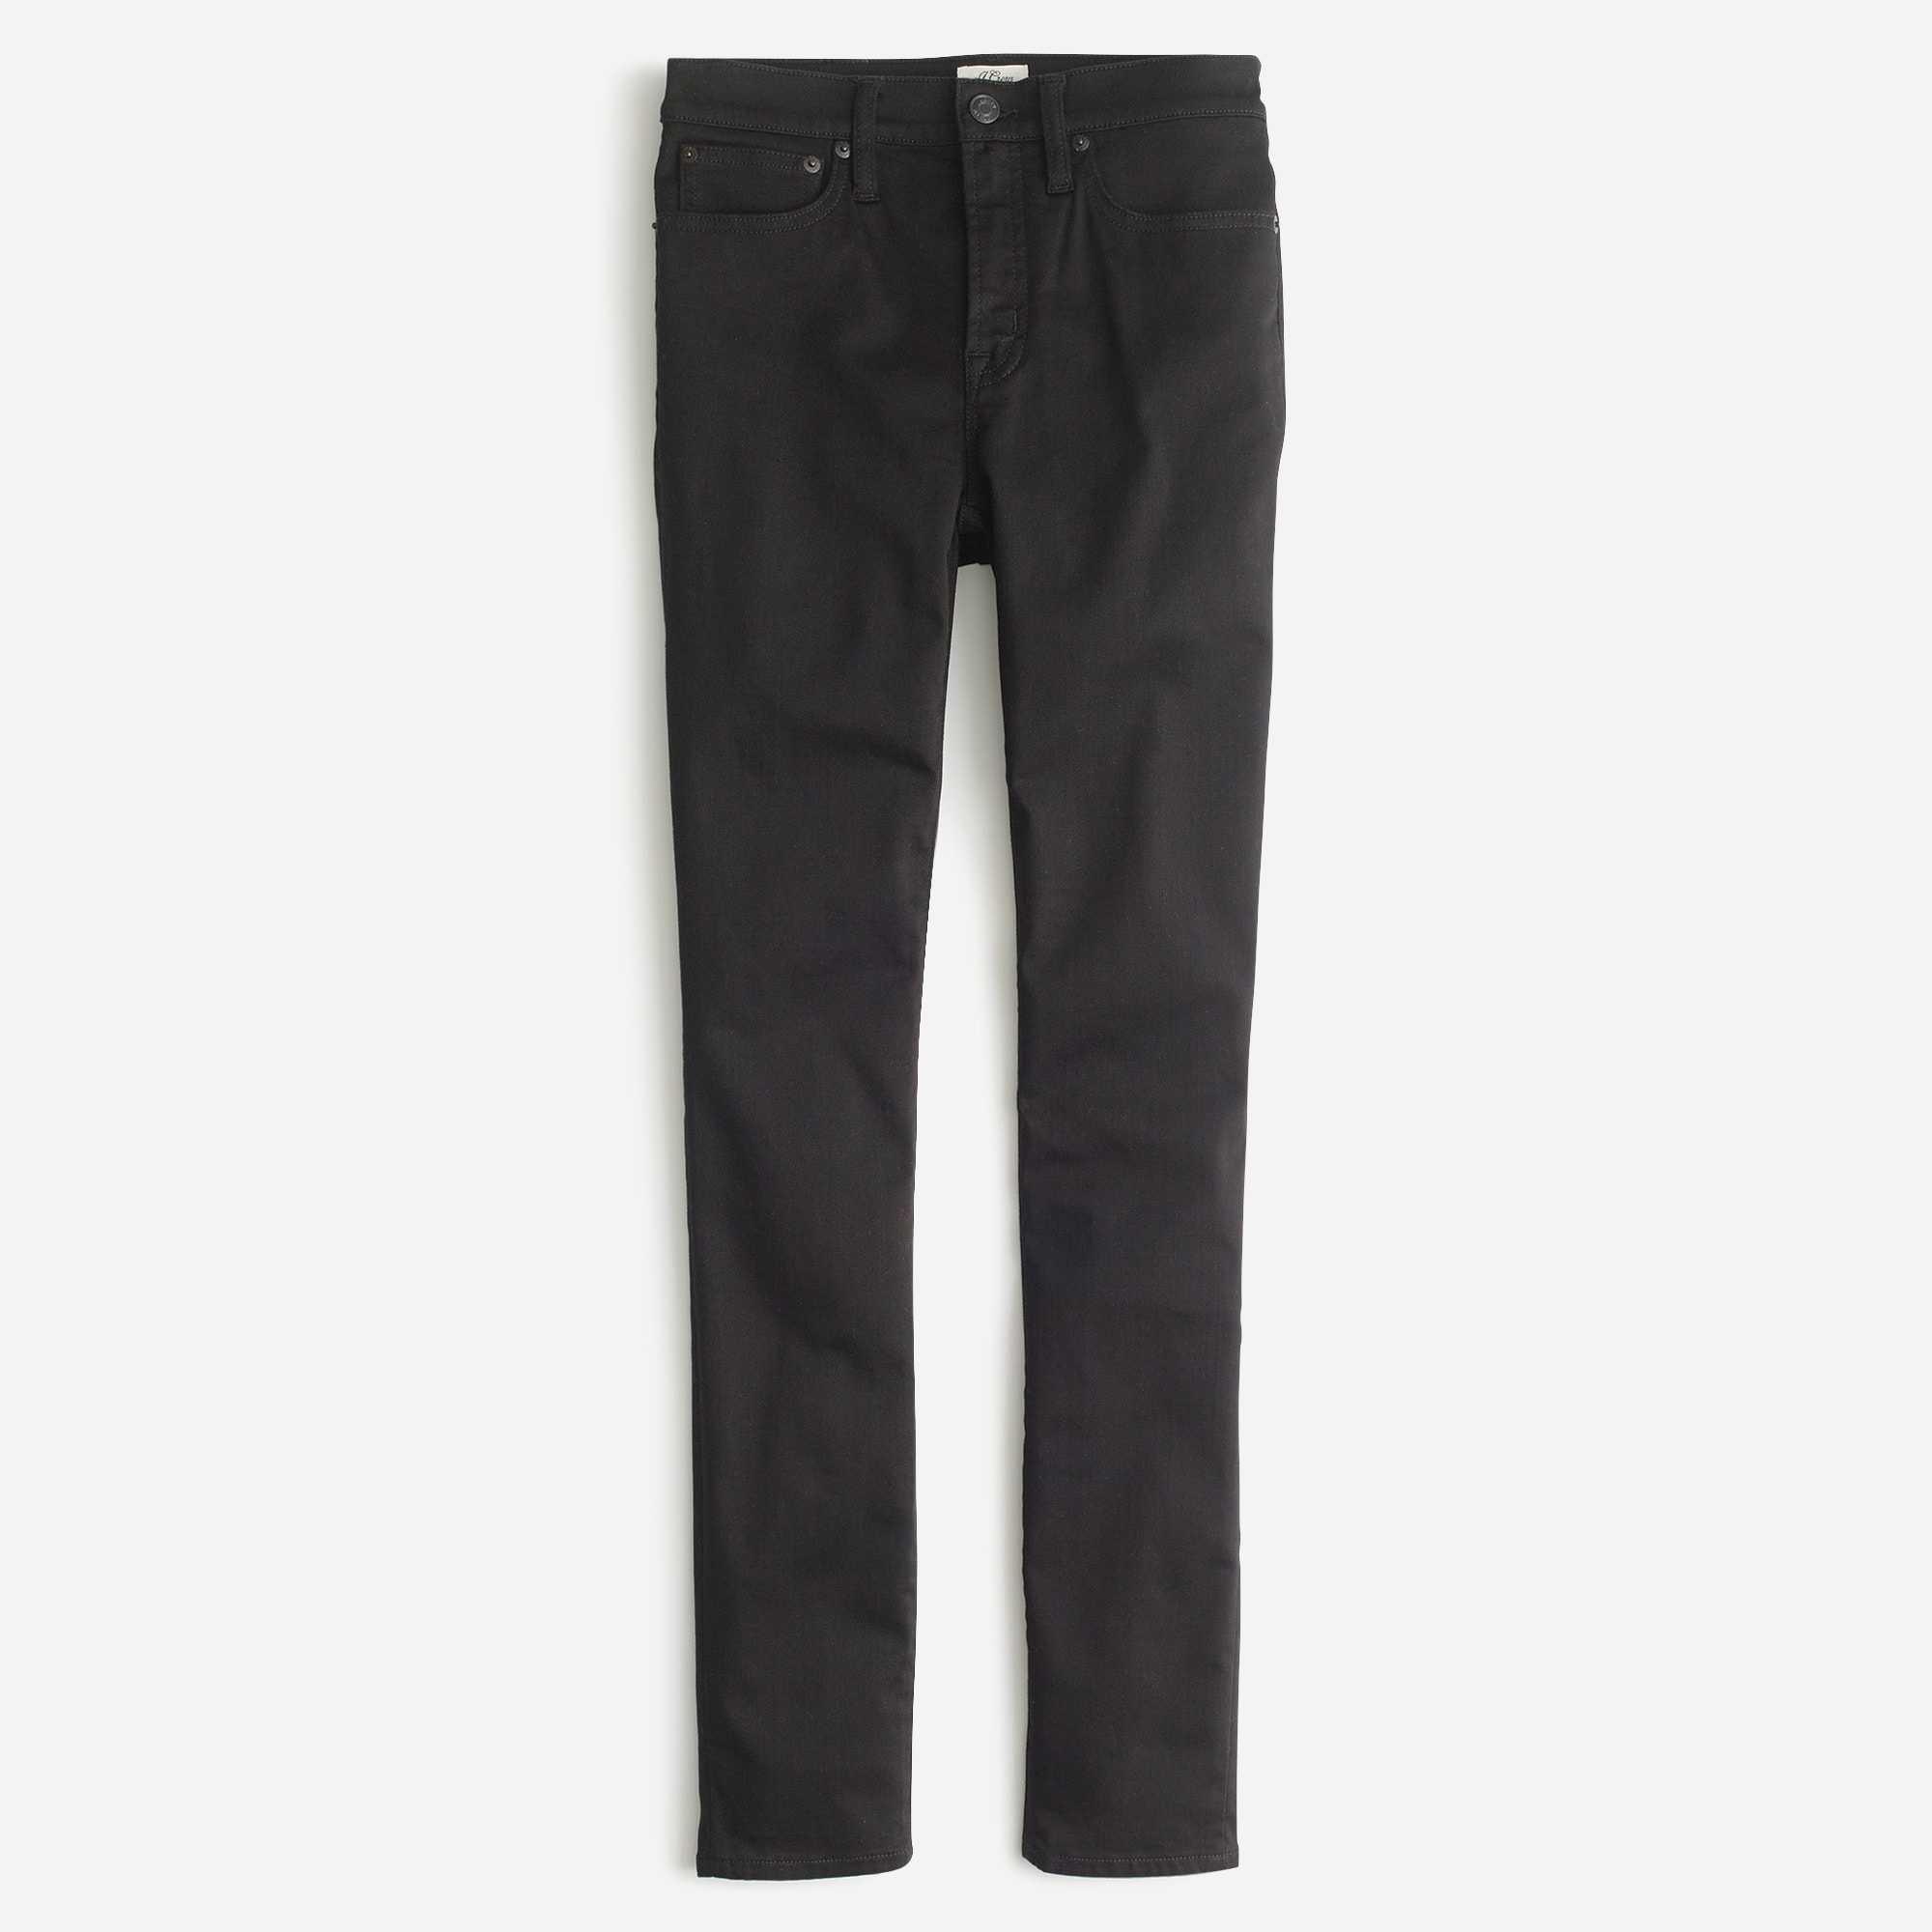 "Petite 9"" high-rise stretchy toothpick jean in new black"